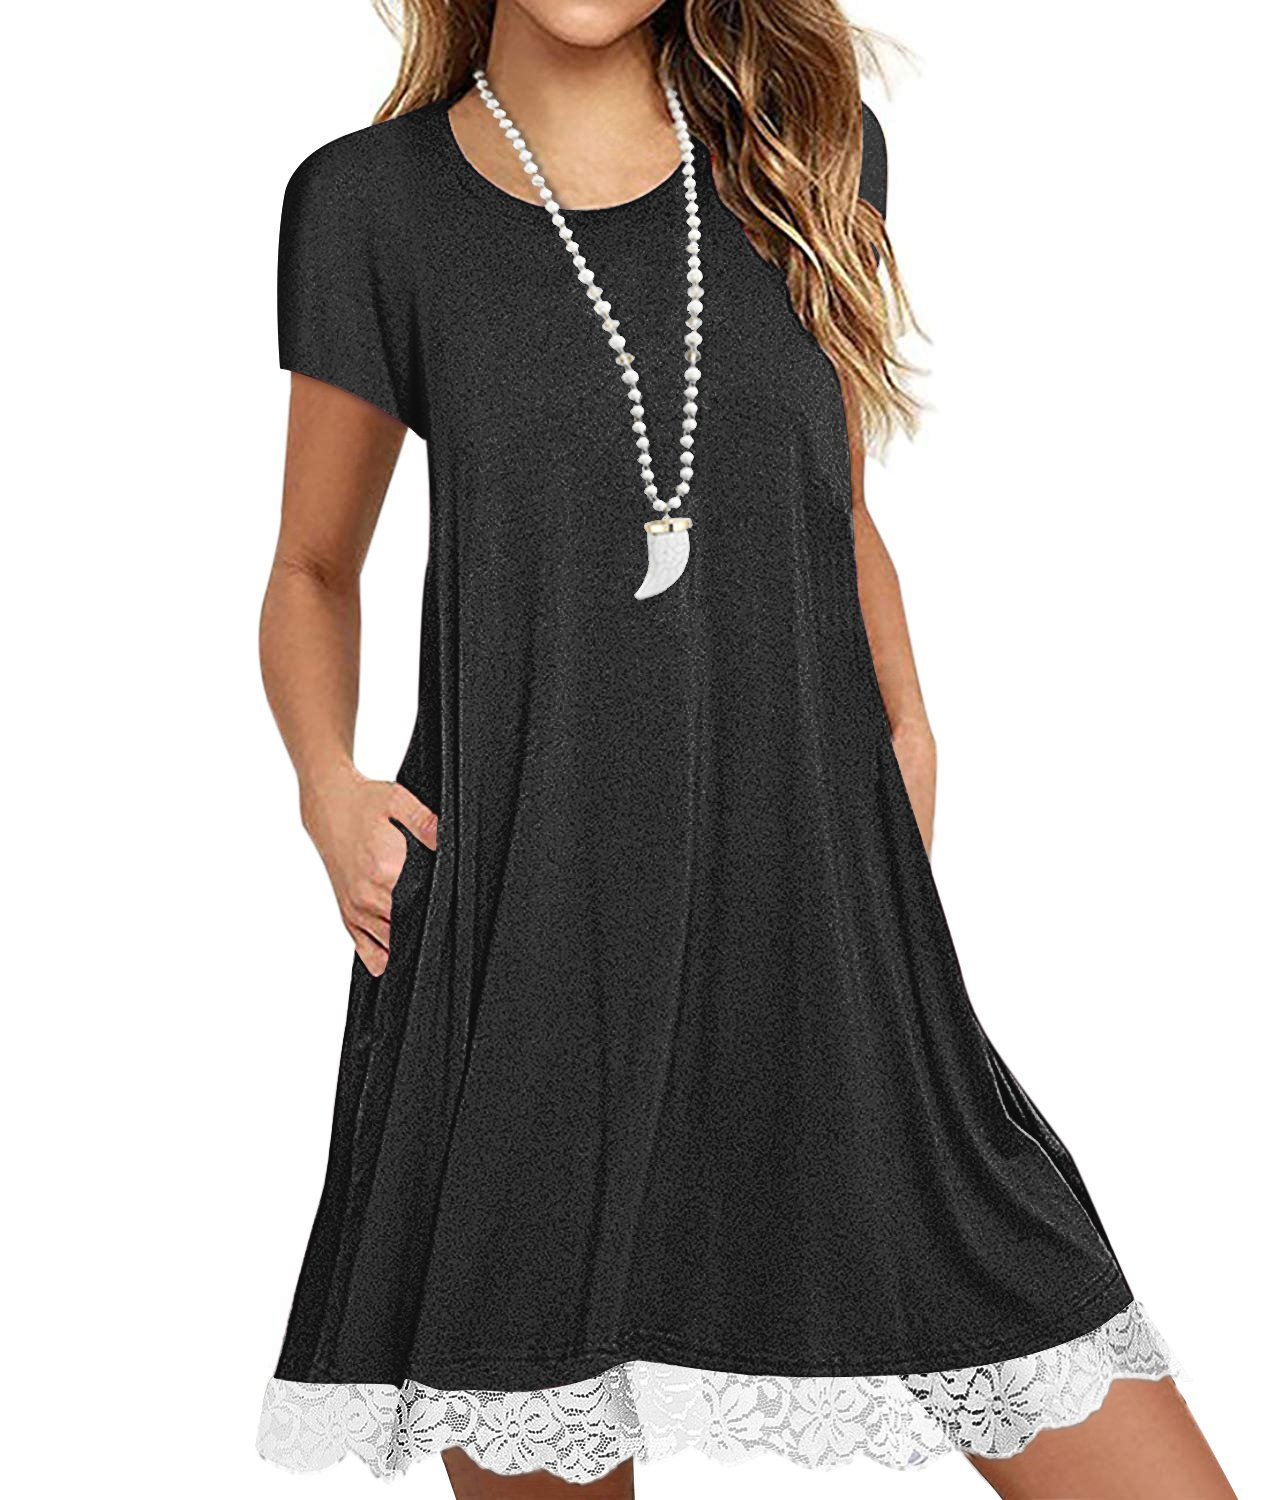 Eanklosco Womens Casual Short Sleeve Plain Pocket V Neck T Shirt Tunic Dress (Black-2, S)